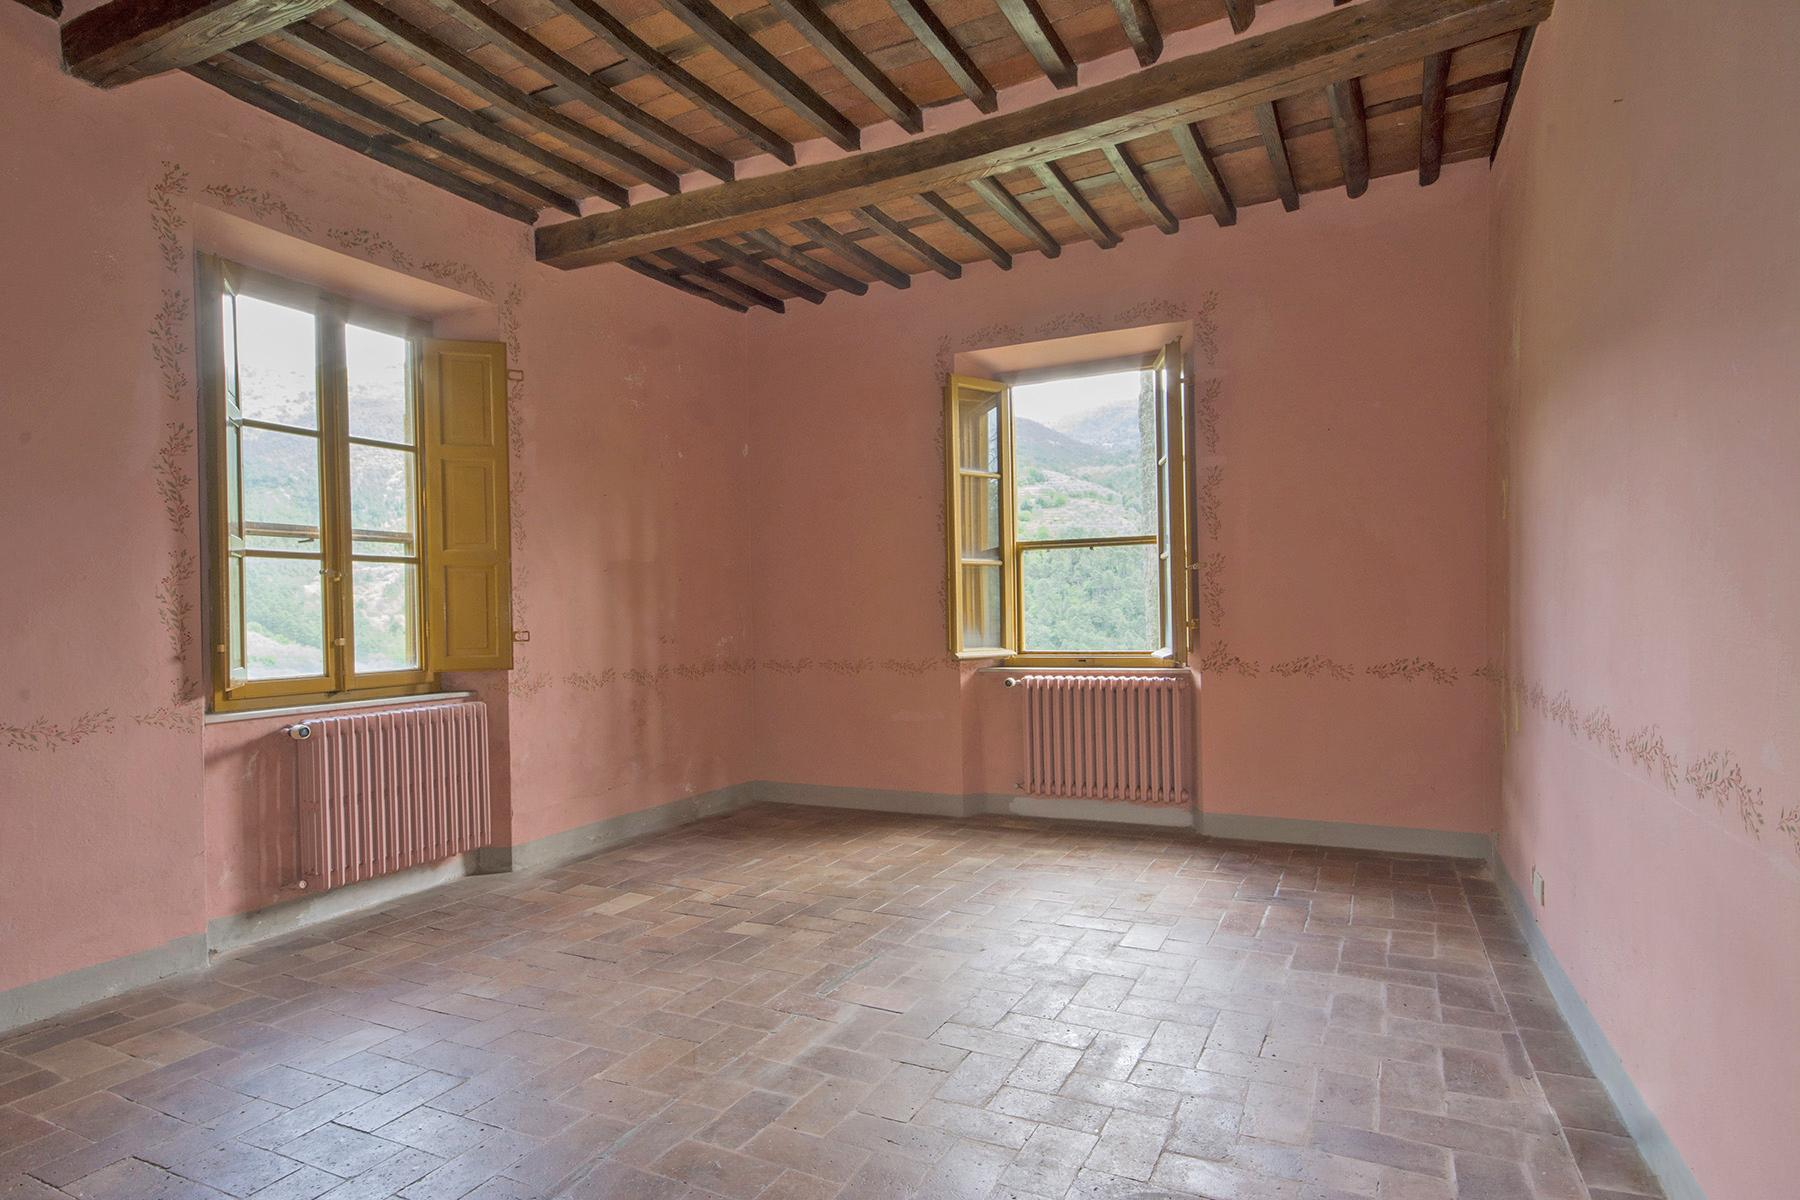 Stunning villa with breathtaking views of the Lucca countryside - 10